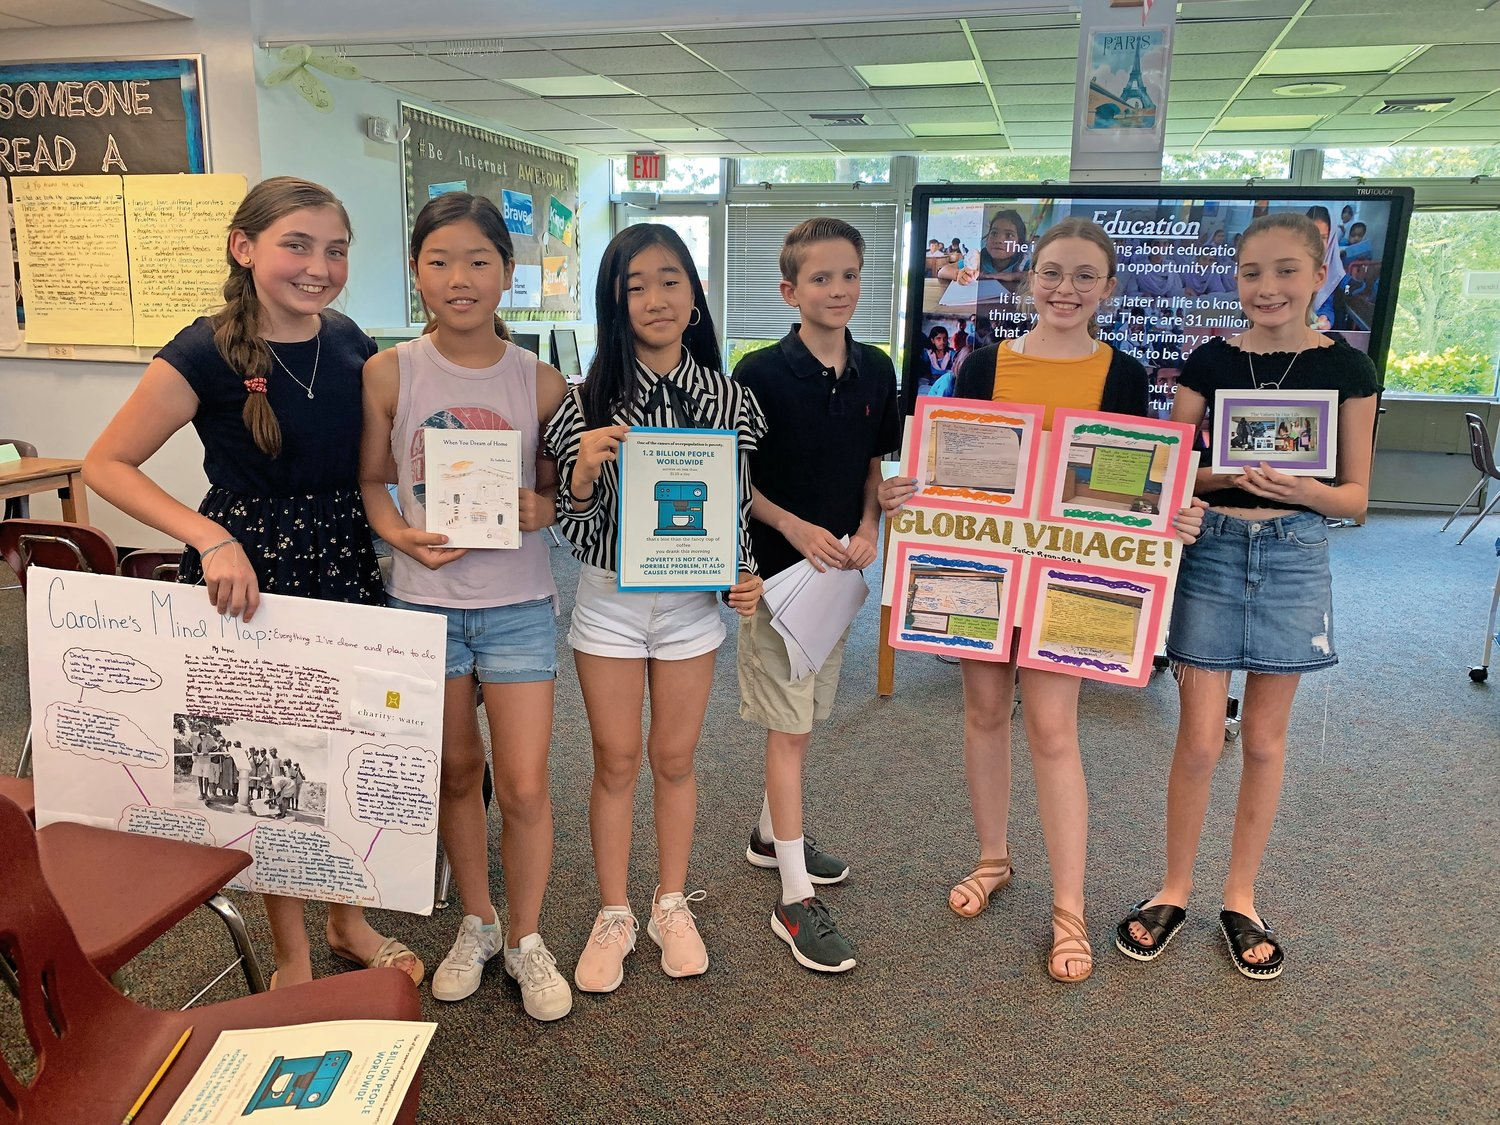 North Shore Middle School students Caroline Winchester, left, Isabelle Lee, Jazmin Ko, James Brissenden, Juliette Ryan-Baez and Olivia Bellocco showed off their action pieces at the Global Village Exhibition on June 11.